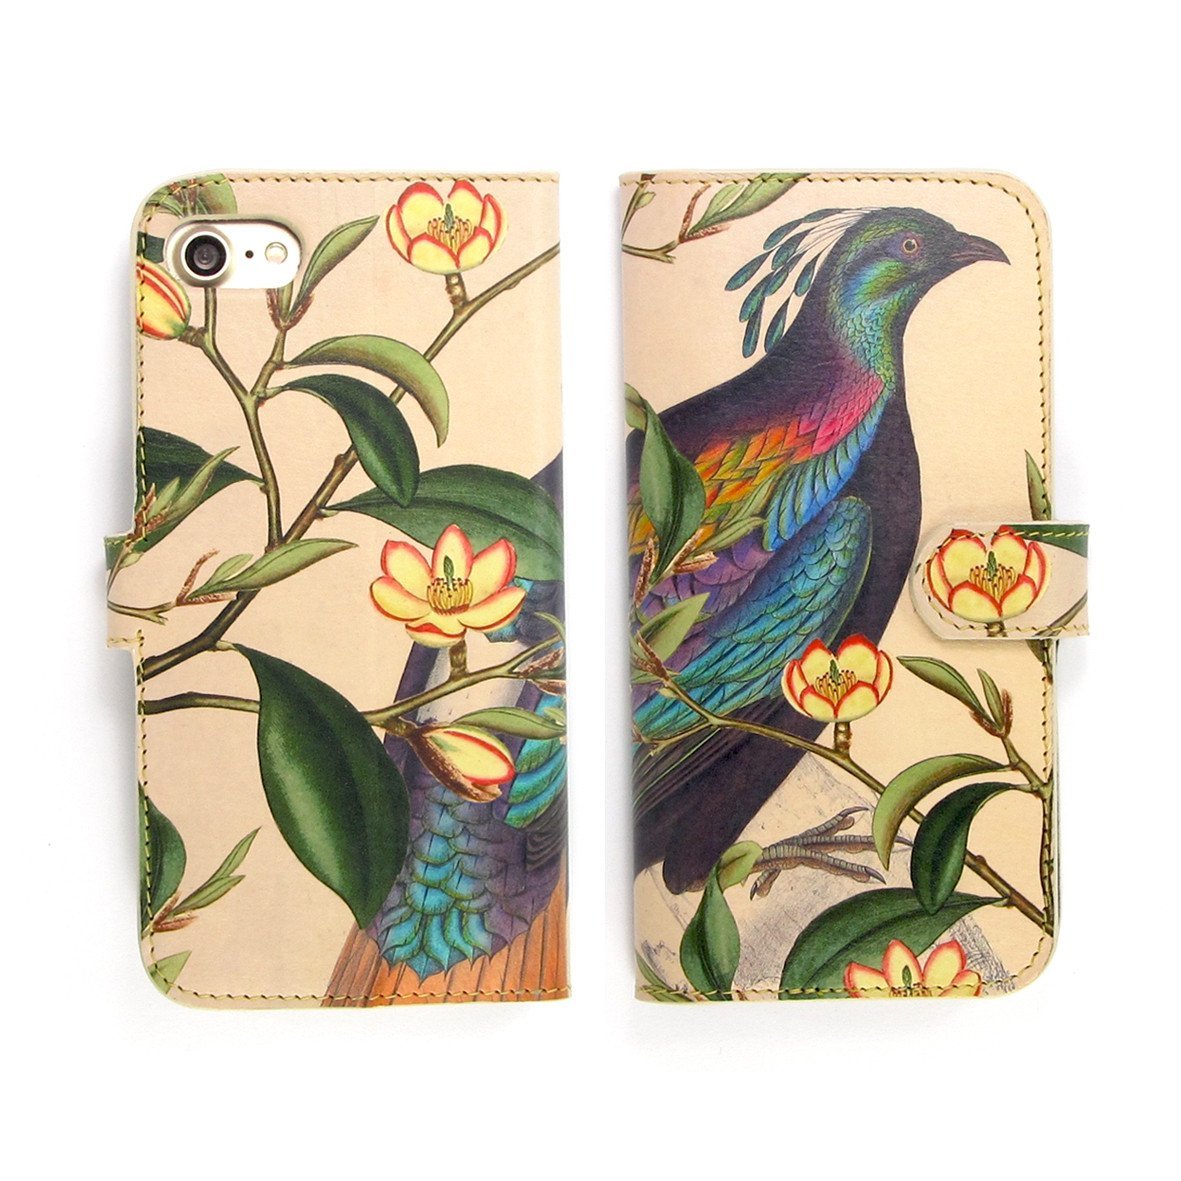 phone wallets - iphone 11 leather case - iphone 11 pro max - iPhone 8 - iPhone XR case - iPhone XS phone case - iPhone XS Max phone case - Pink designer phone case by Tovi Sorga - Birds and flowers